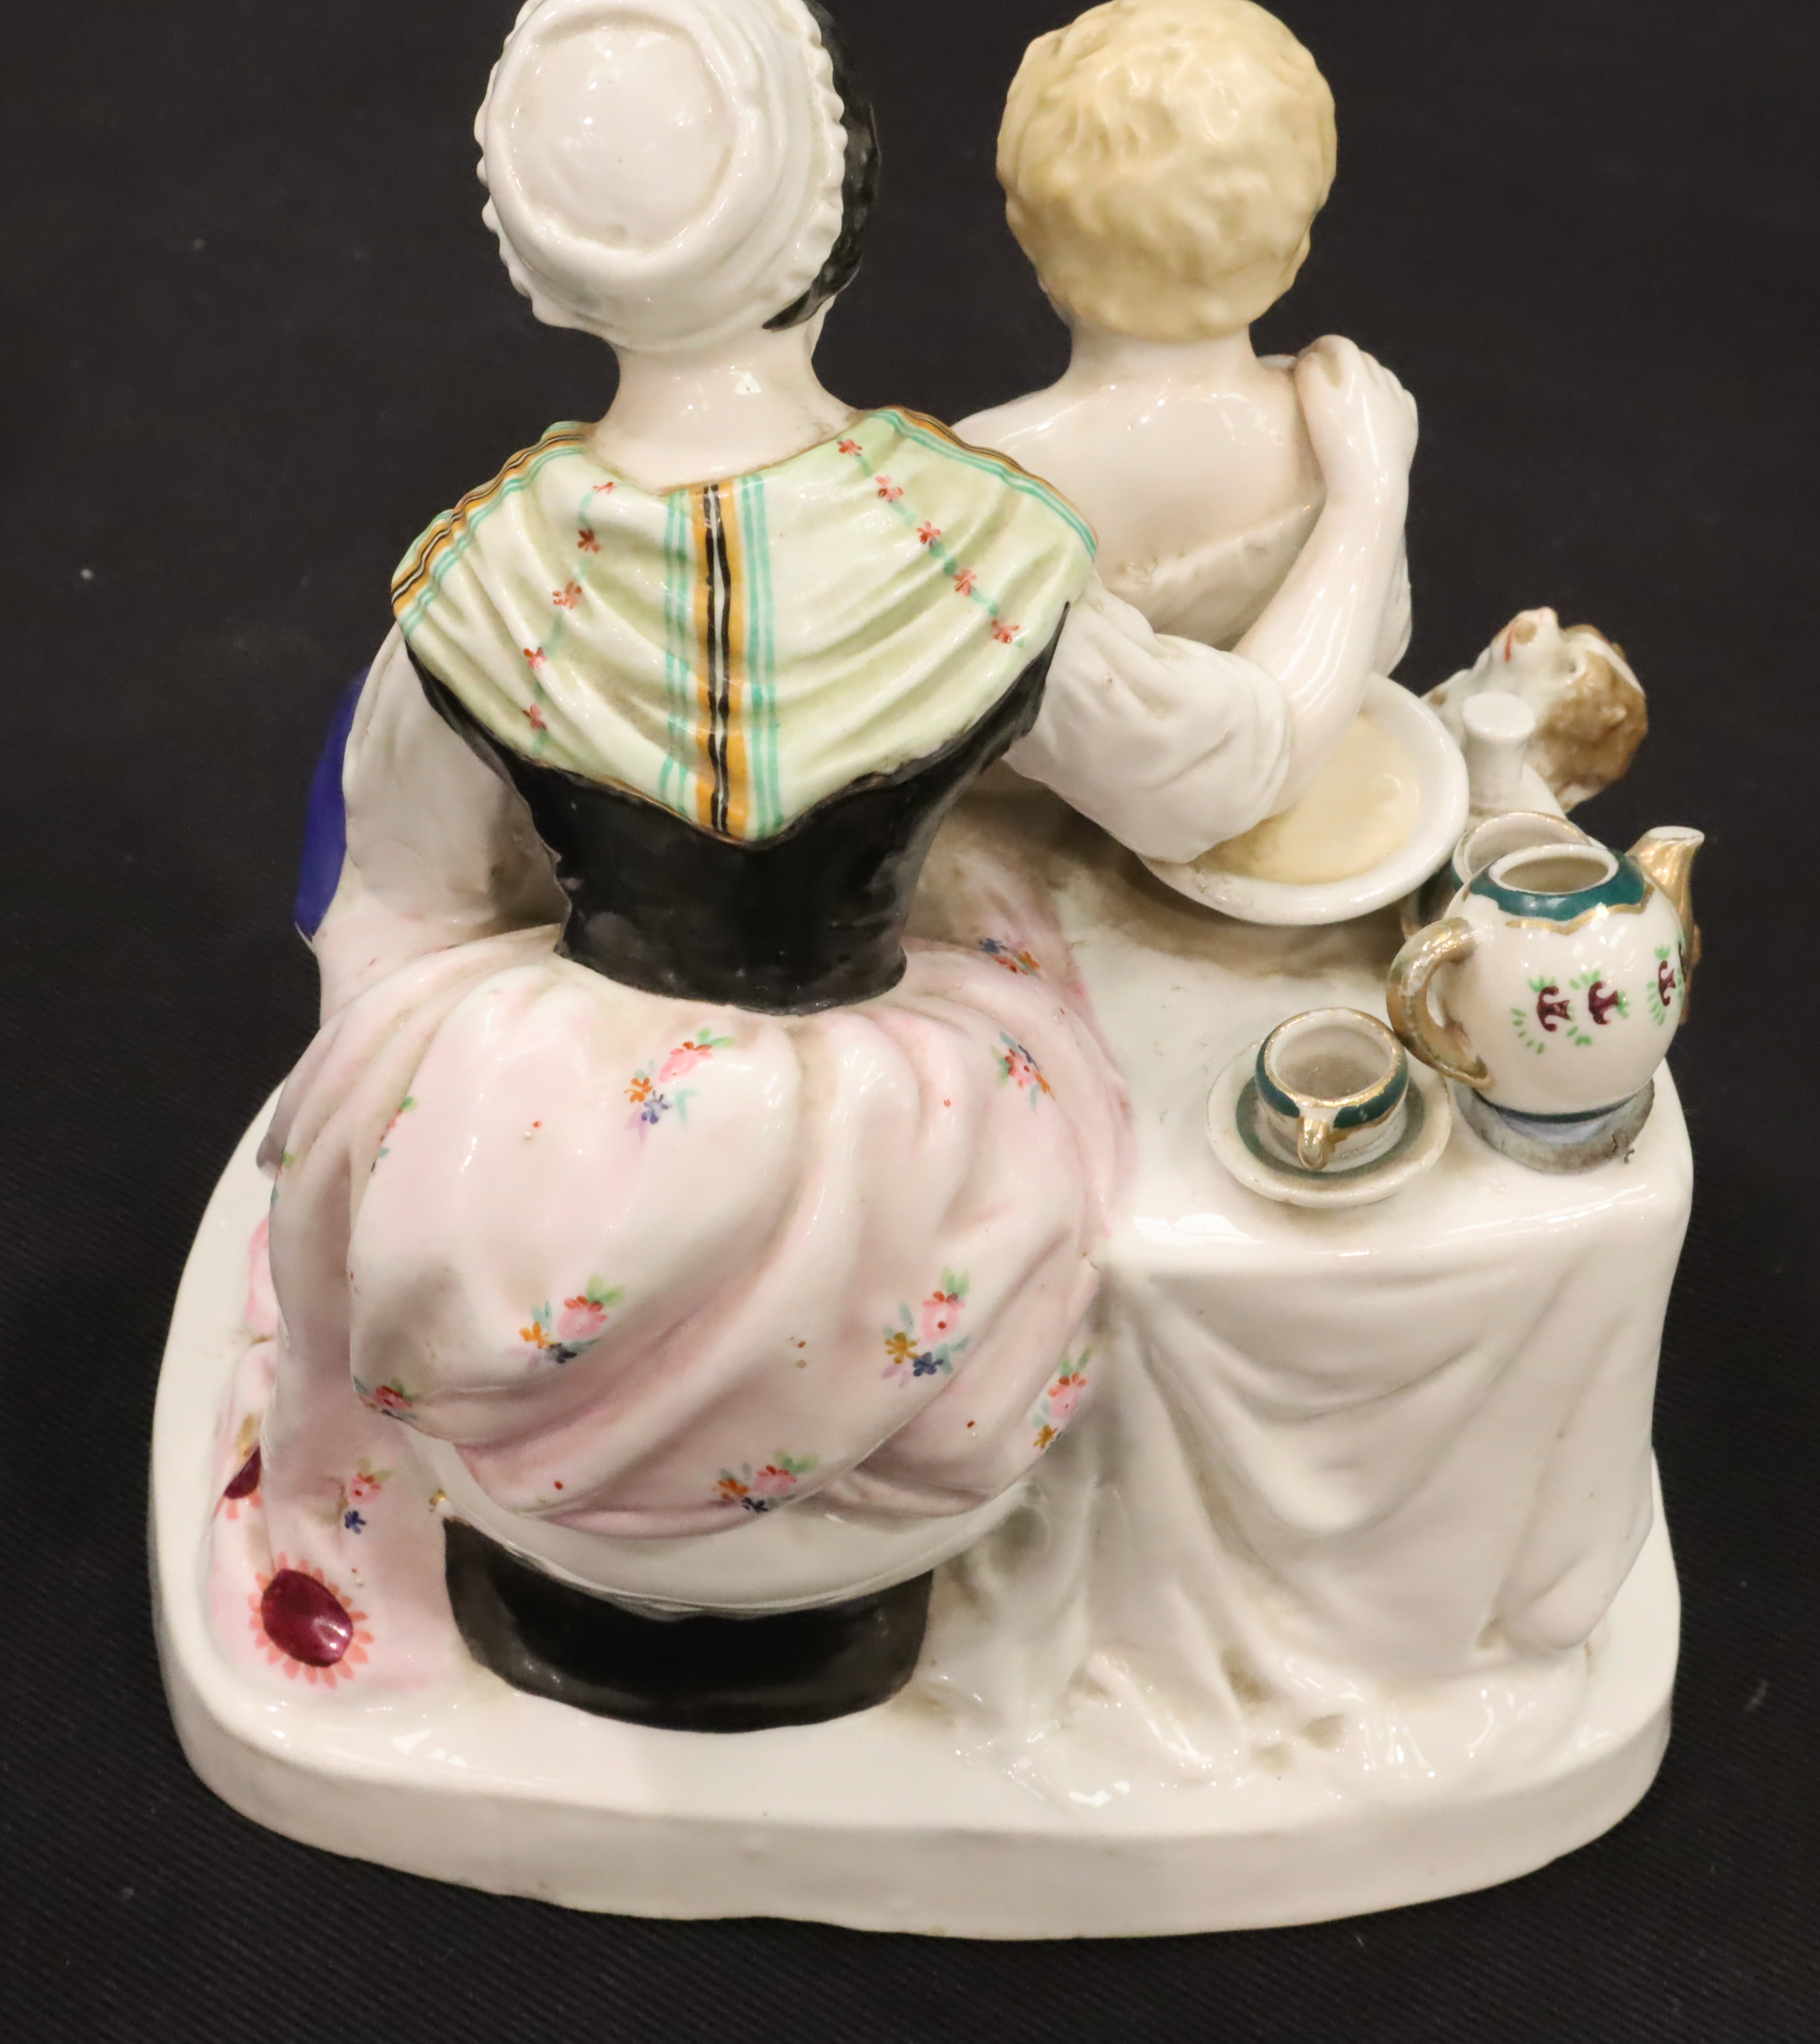 Continental woman and boy figurine, H: 21 cm. P&P Group 2 (£18+VAT for the first lot and £3+VAT - Image 2 of 3